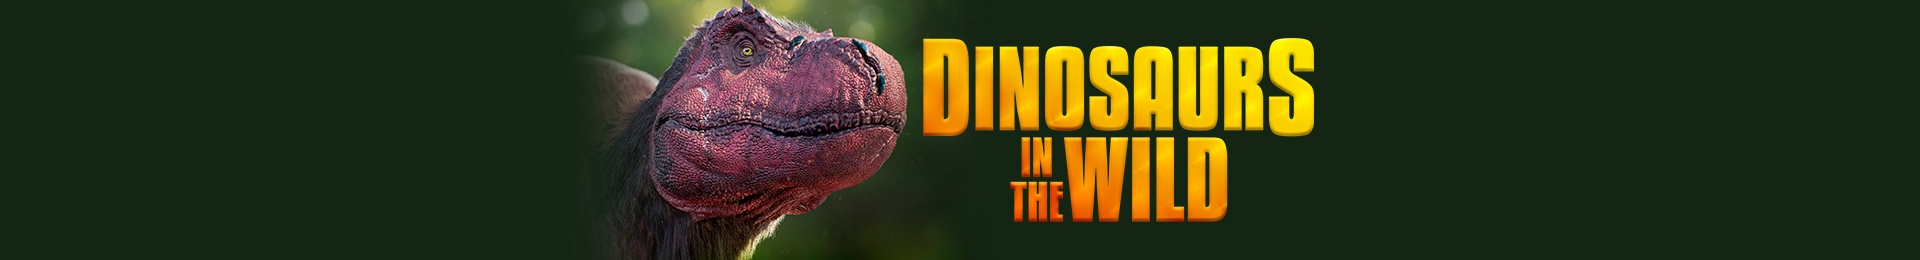 Dinosaurs in the Wild banner image